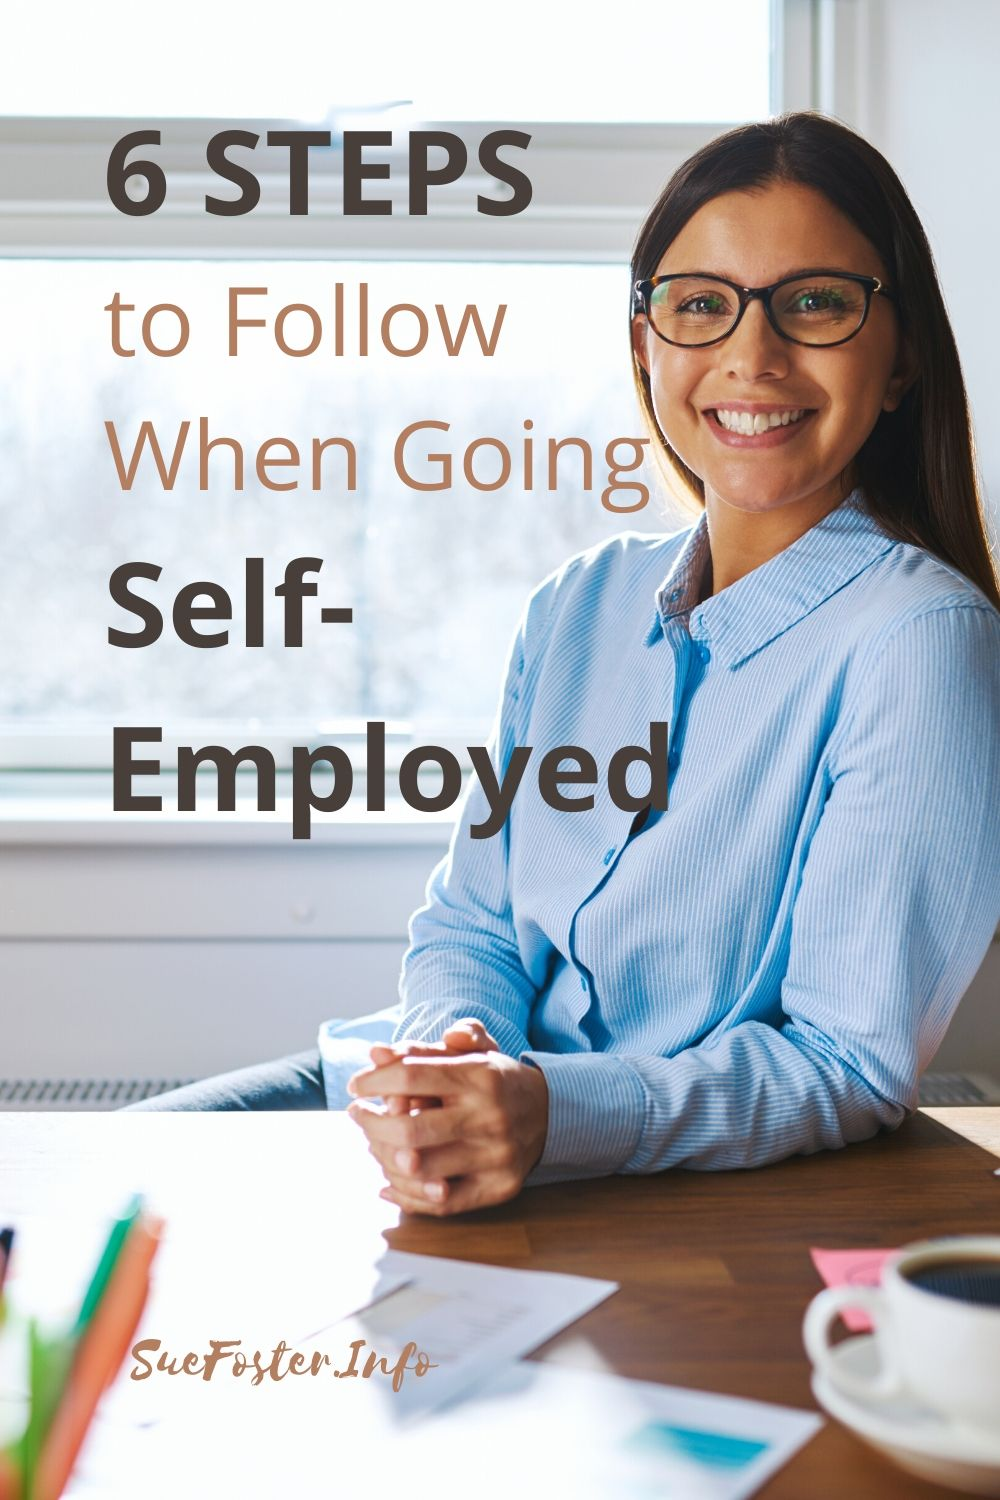 Here is a quick and easy guide to the key steps involved in going self-employed.